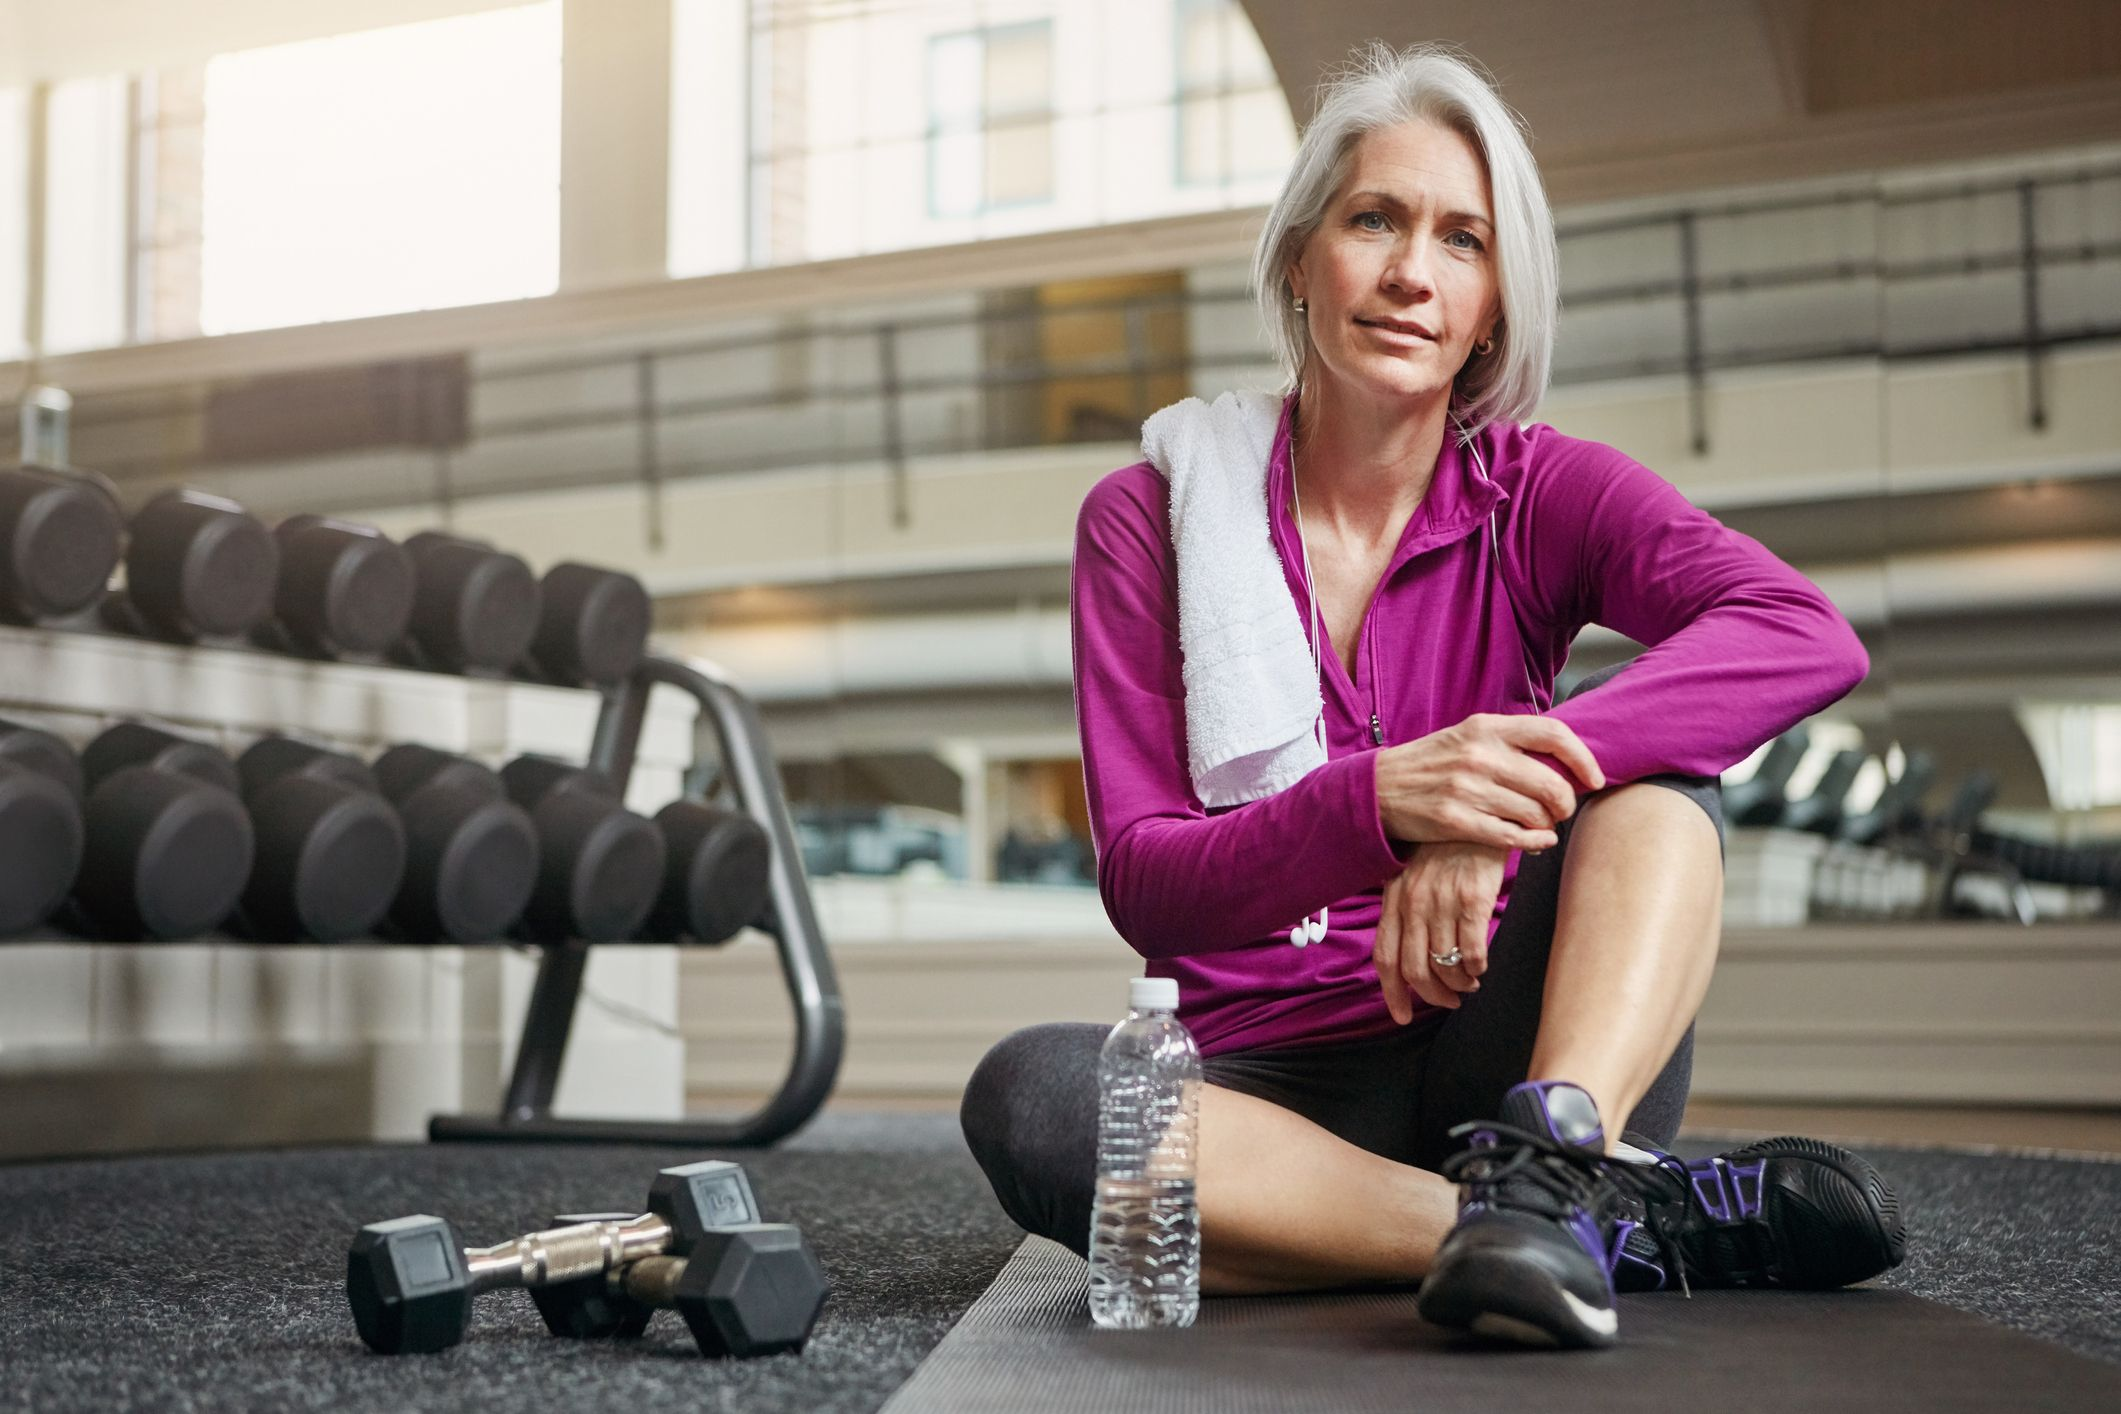 The 5 Exercises Everyone Over 50 Needs to Be Doing, According to a Doctor